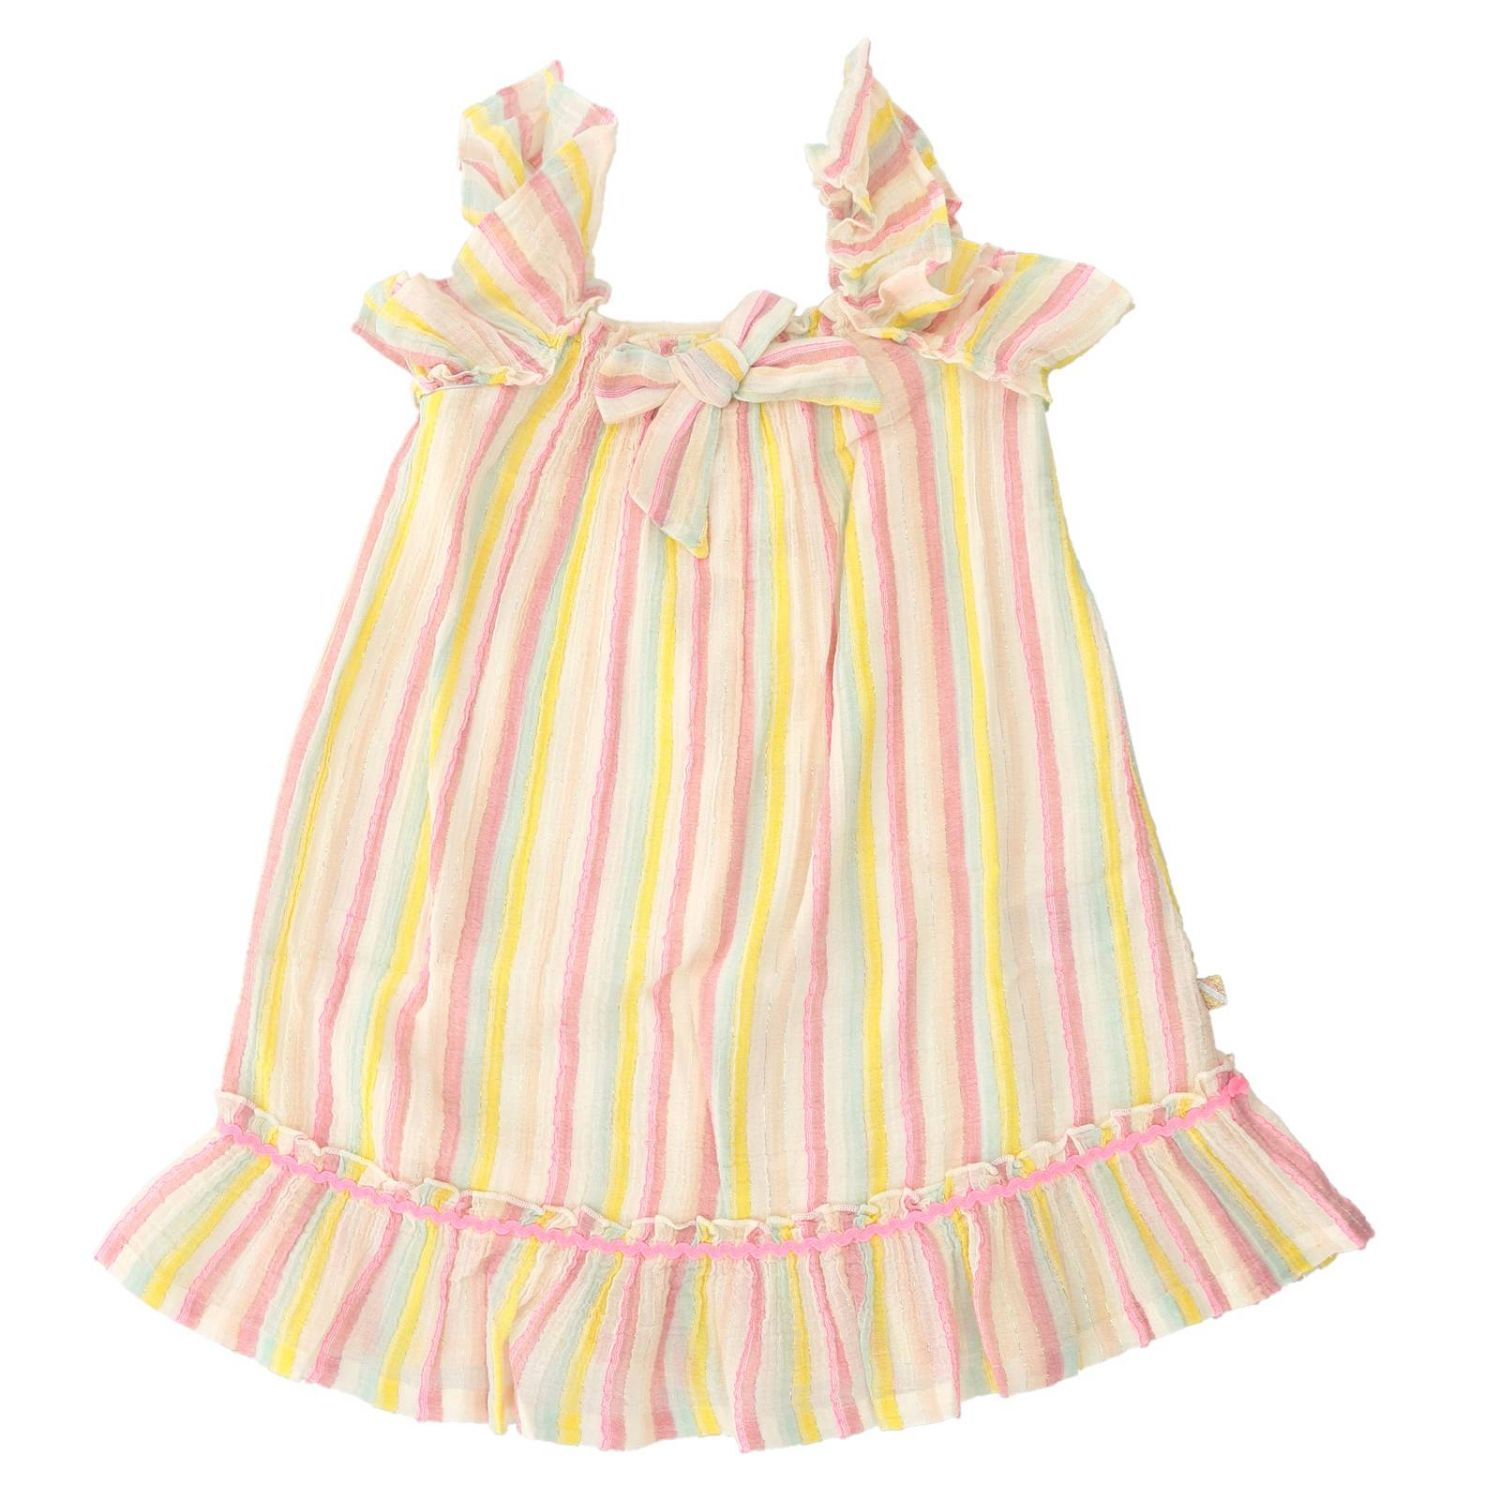 Robe enfant Billieblush multicolore 1